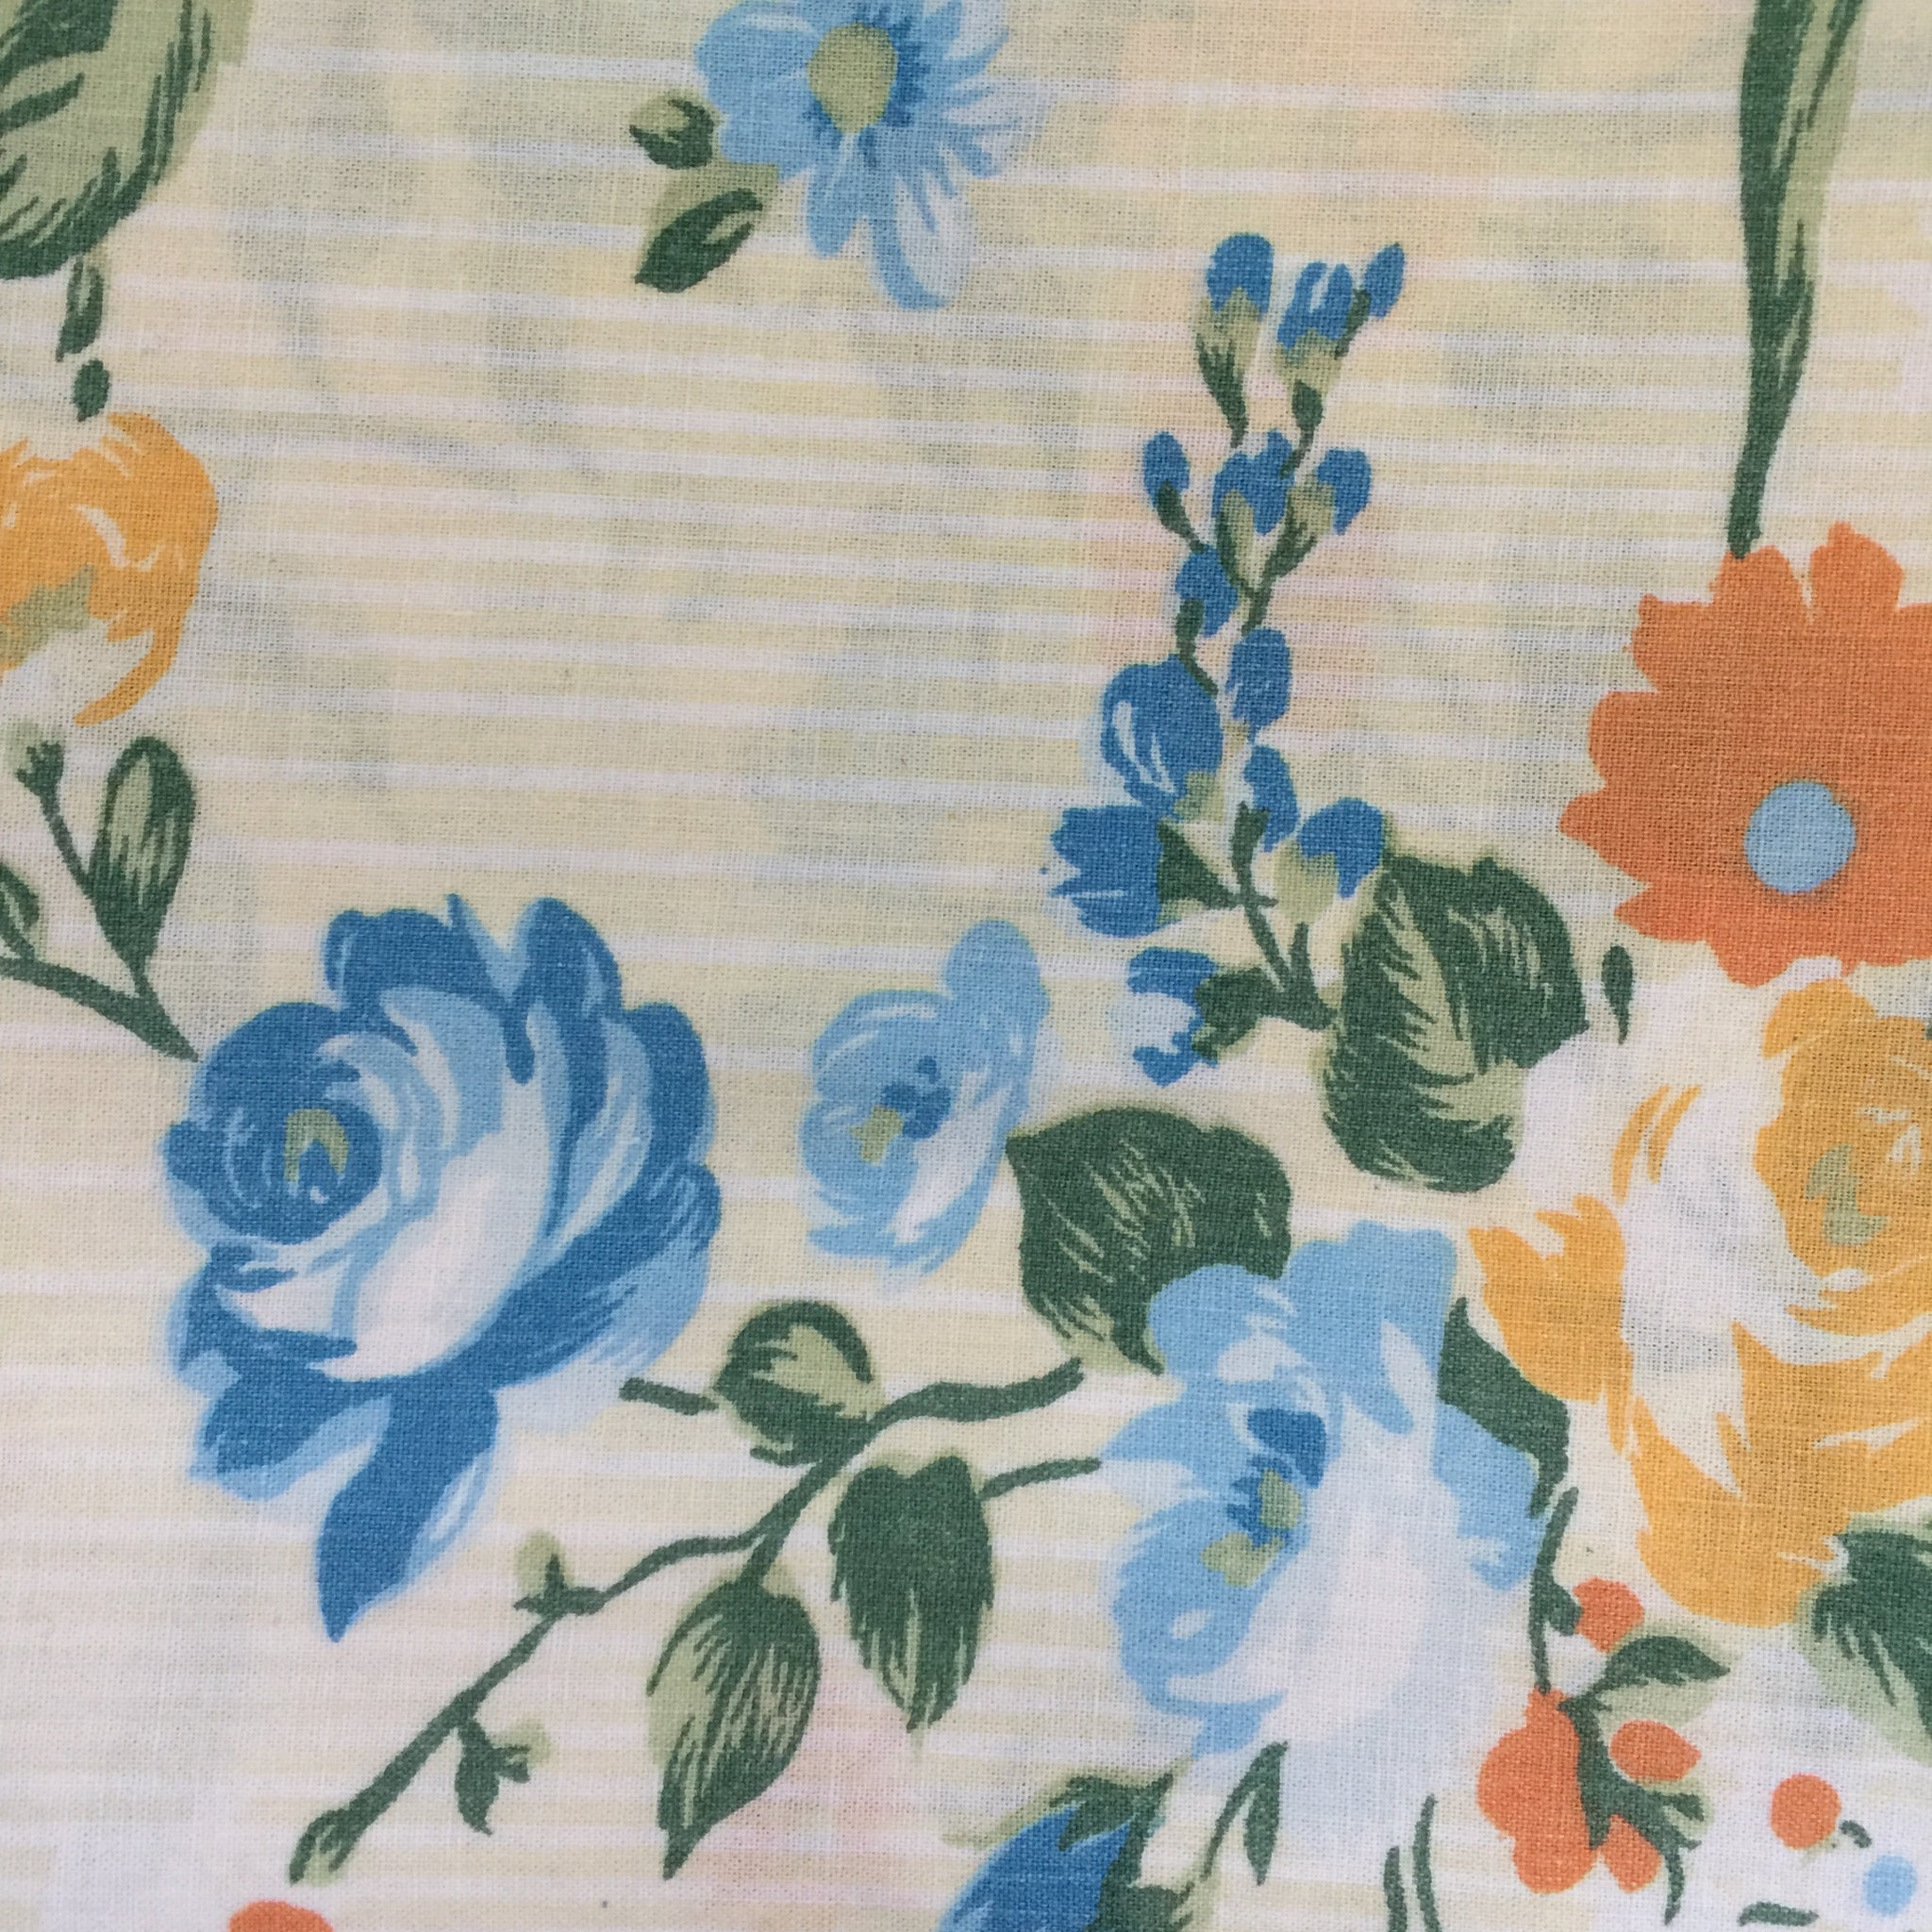 Vintage Cotton Sheet FLORAL Fabric Craft Sewing Cute